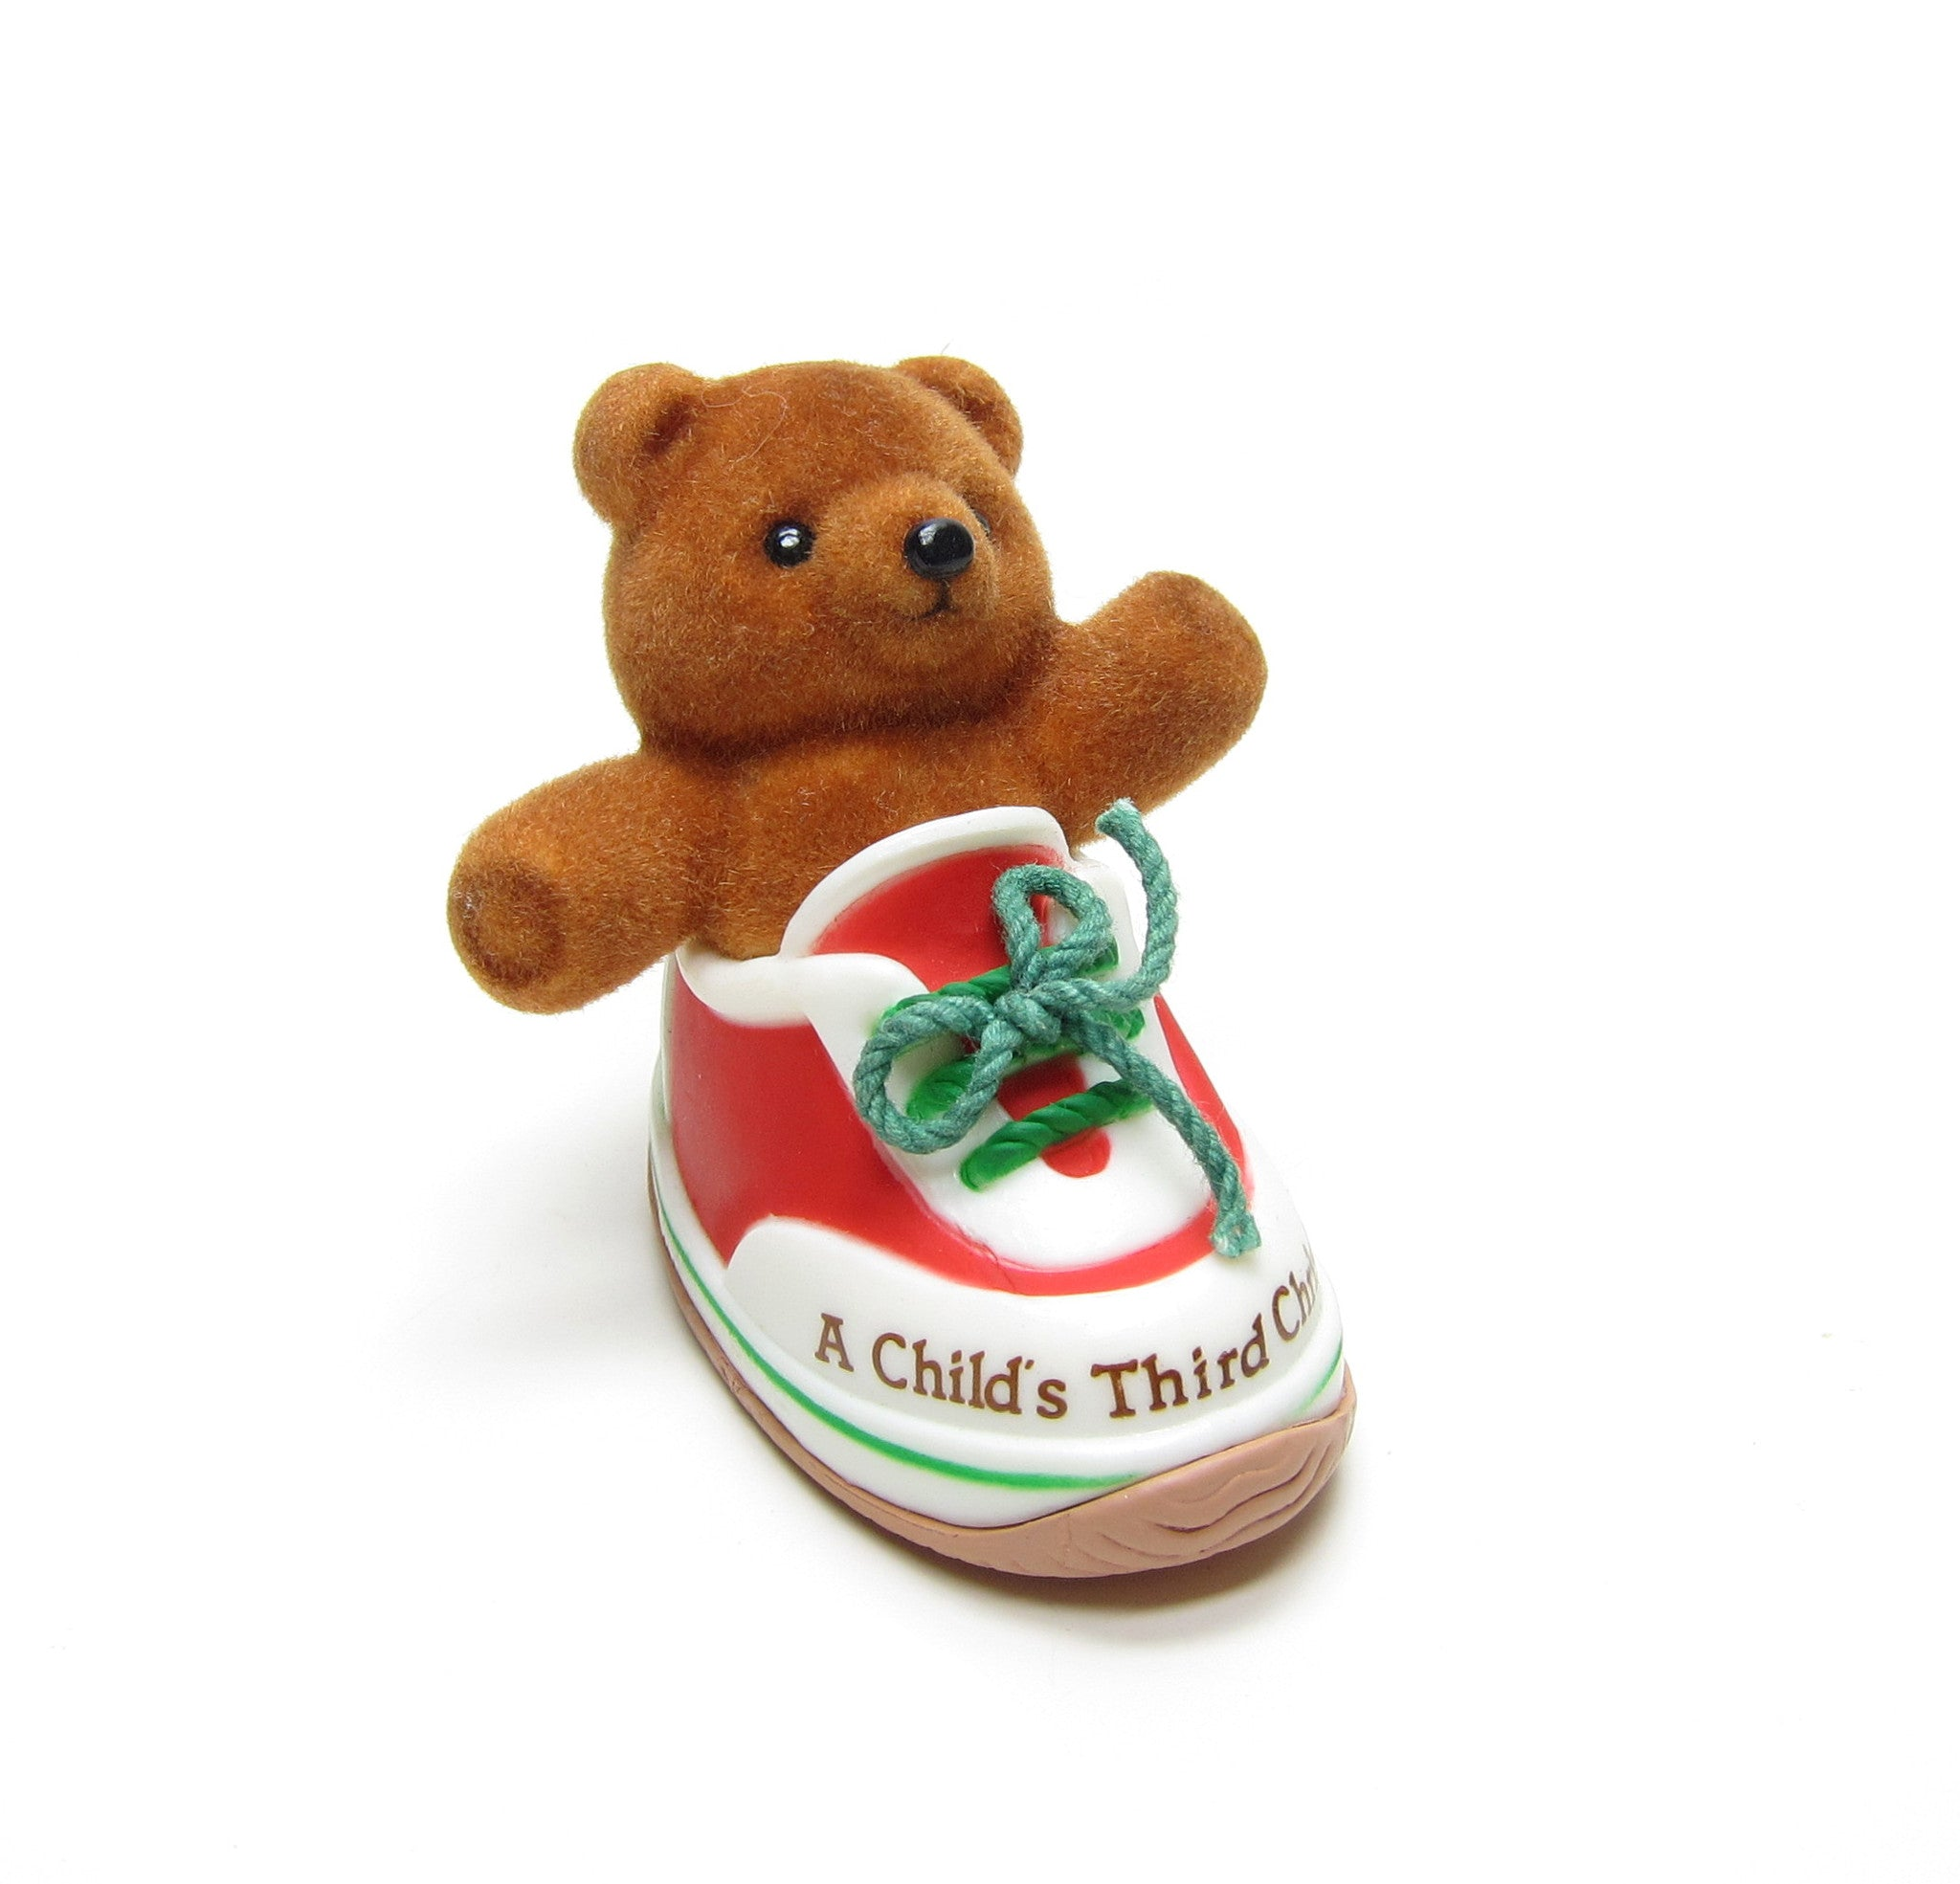 A Child's Third Christmas vintage 1985 ornament